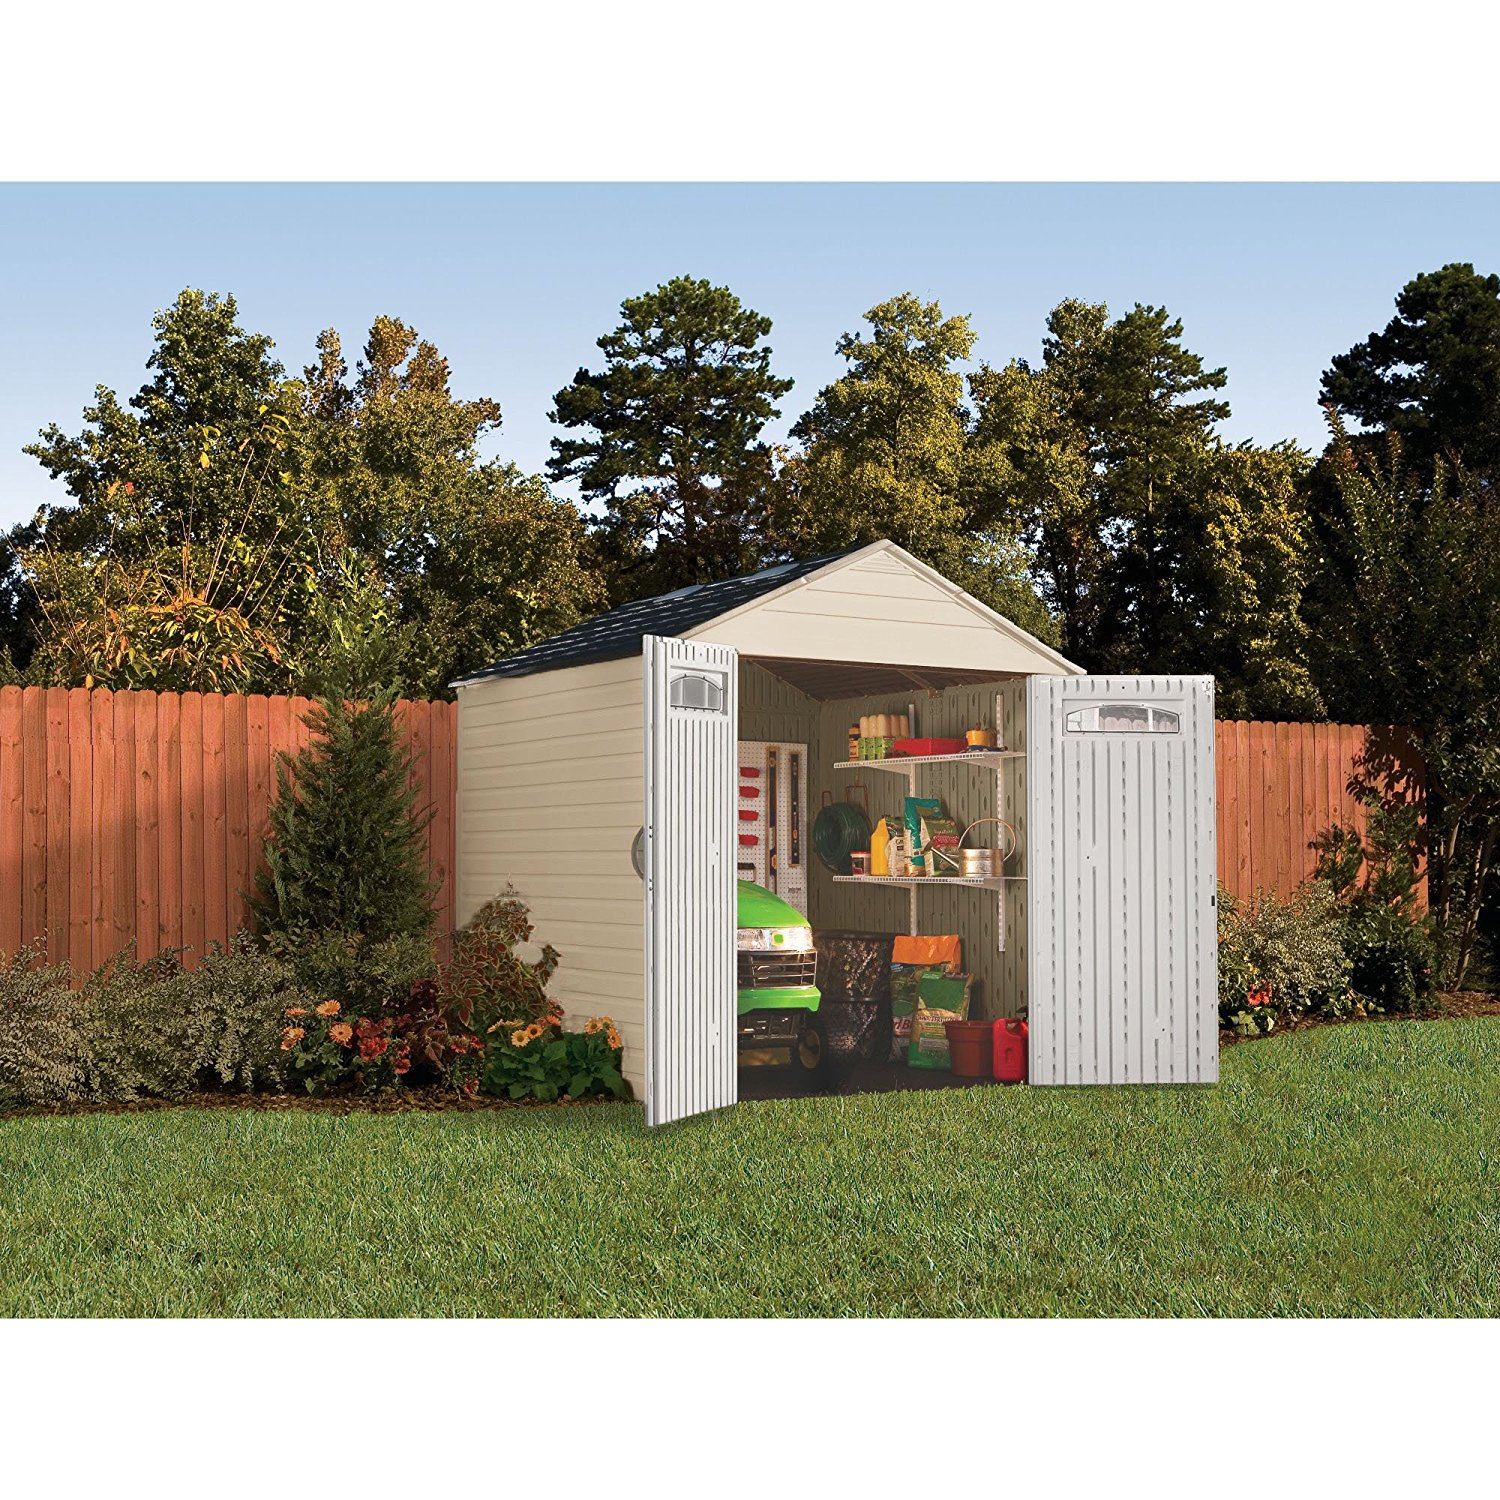 Lowes Buildings | Shed Kits Lowes | Rubbermaid Sheds